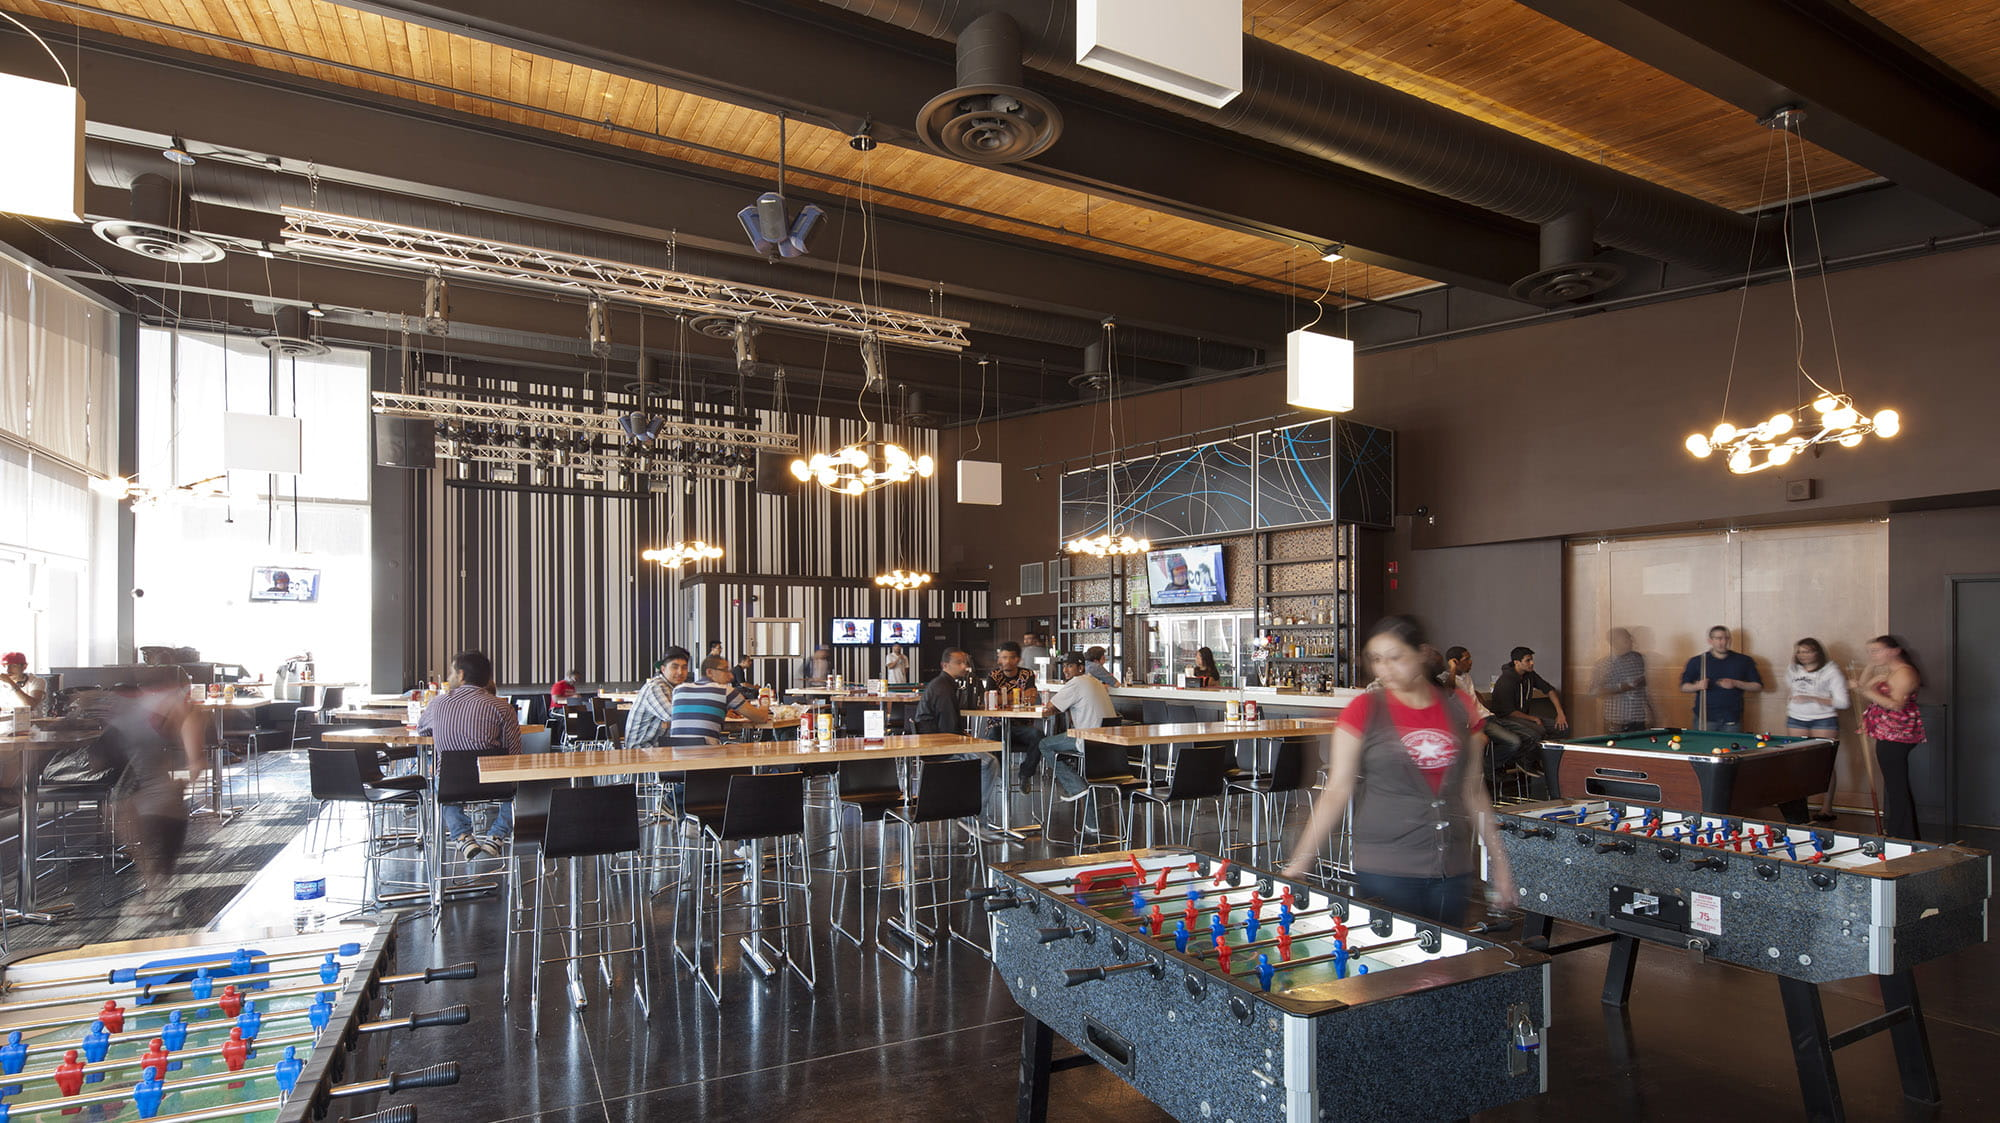 A pub filled with tables, chairs, foosball tables and students chatting